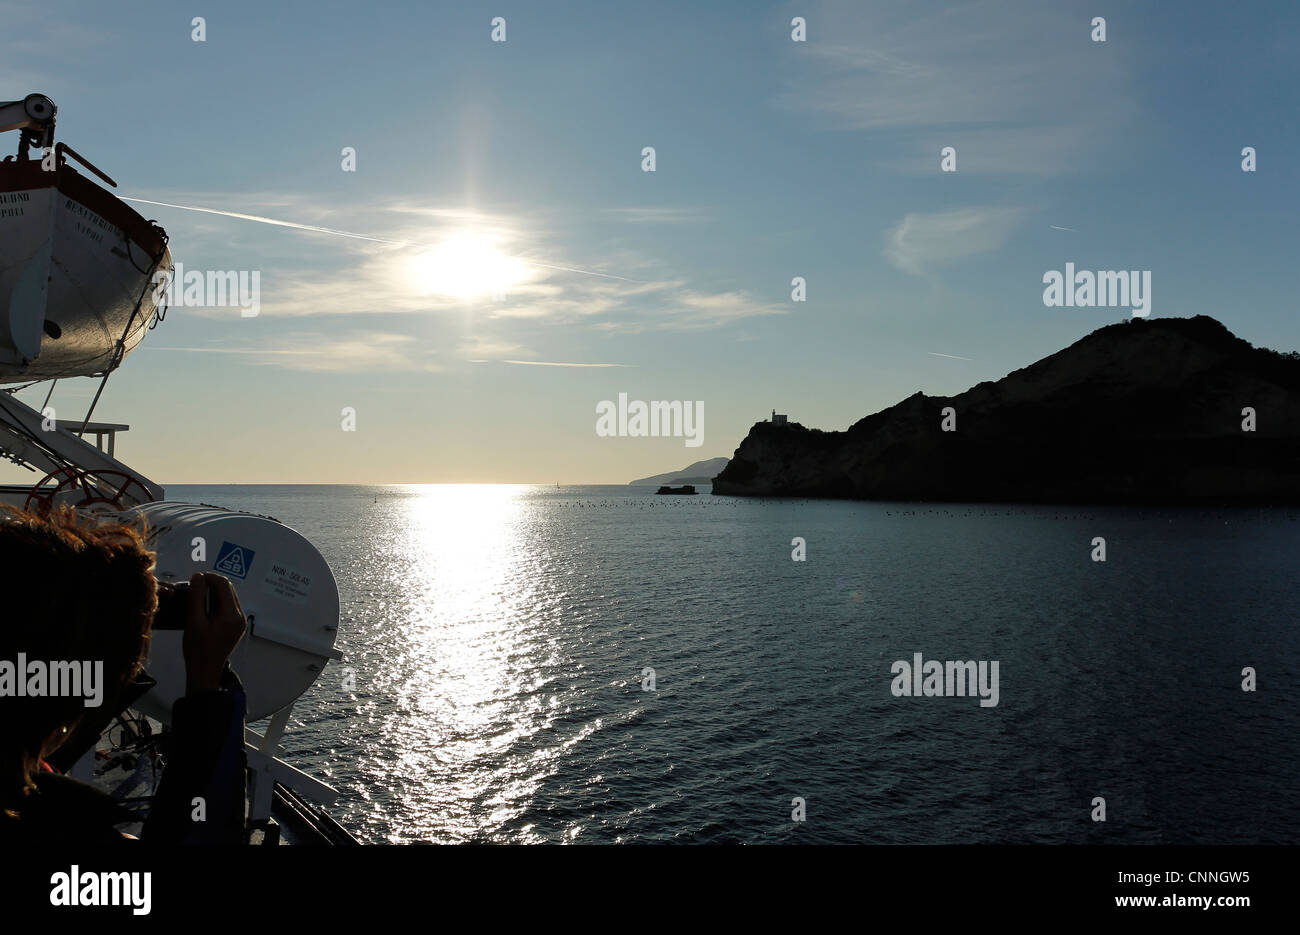 Taking picture on a ferry boat near the lighthouse of Capo Miseno, Gulf of Naples, Pozzuoli, Campania, Italy - Stock Image